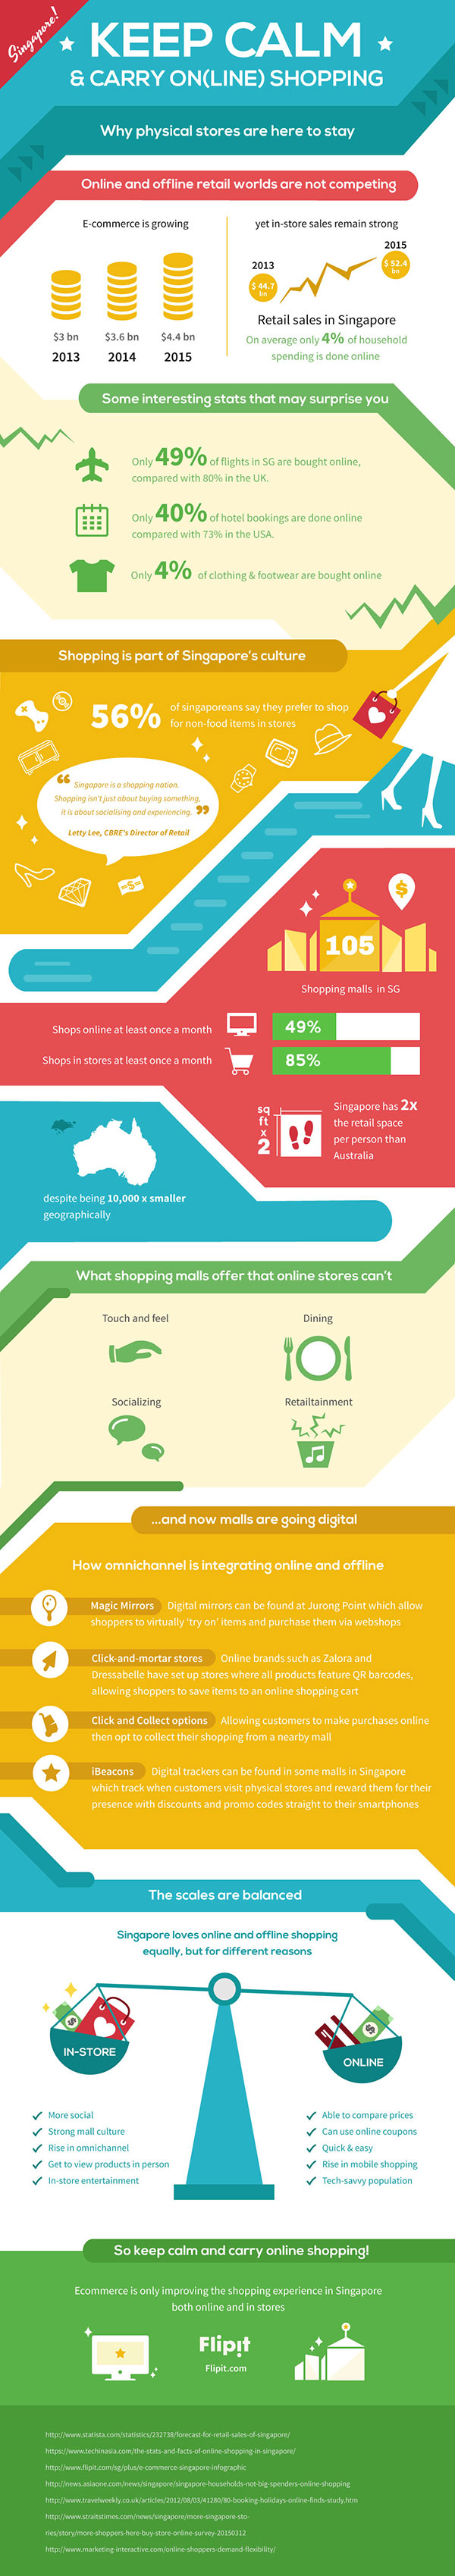 Infographic: online and offline shopping in Singapore